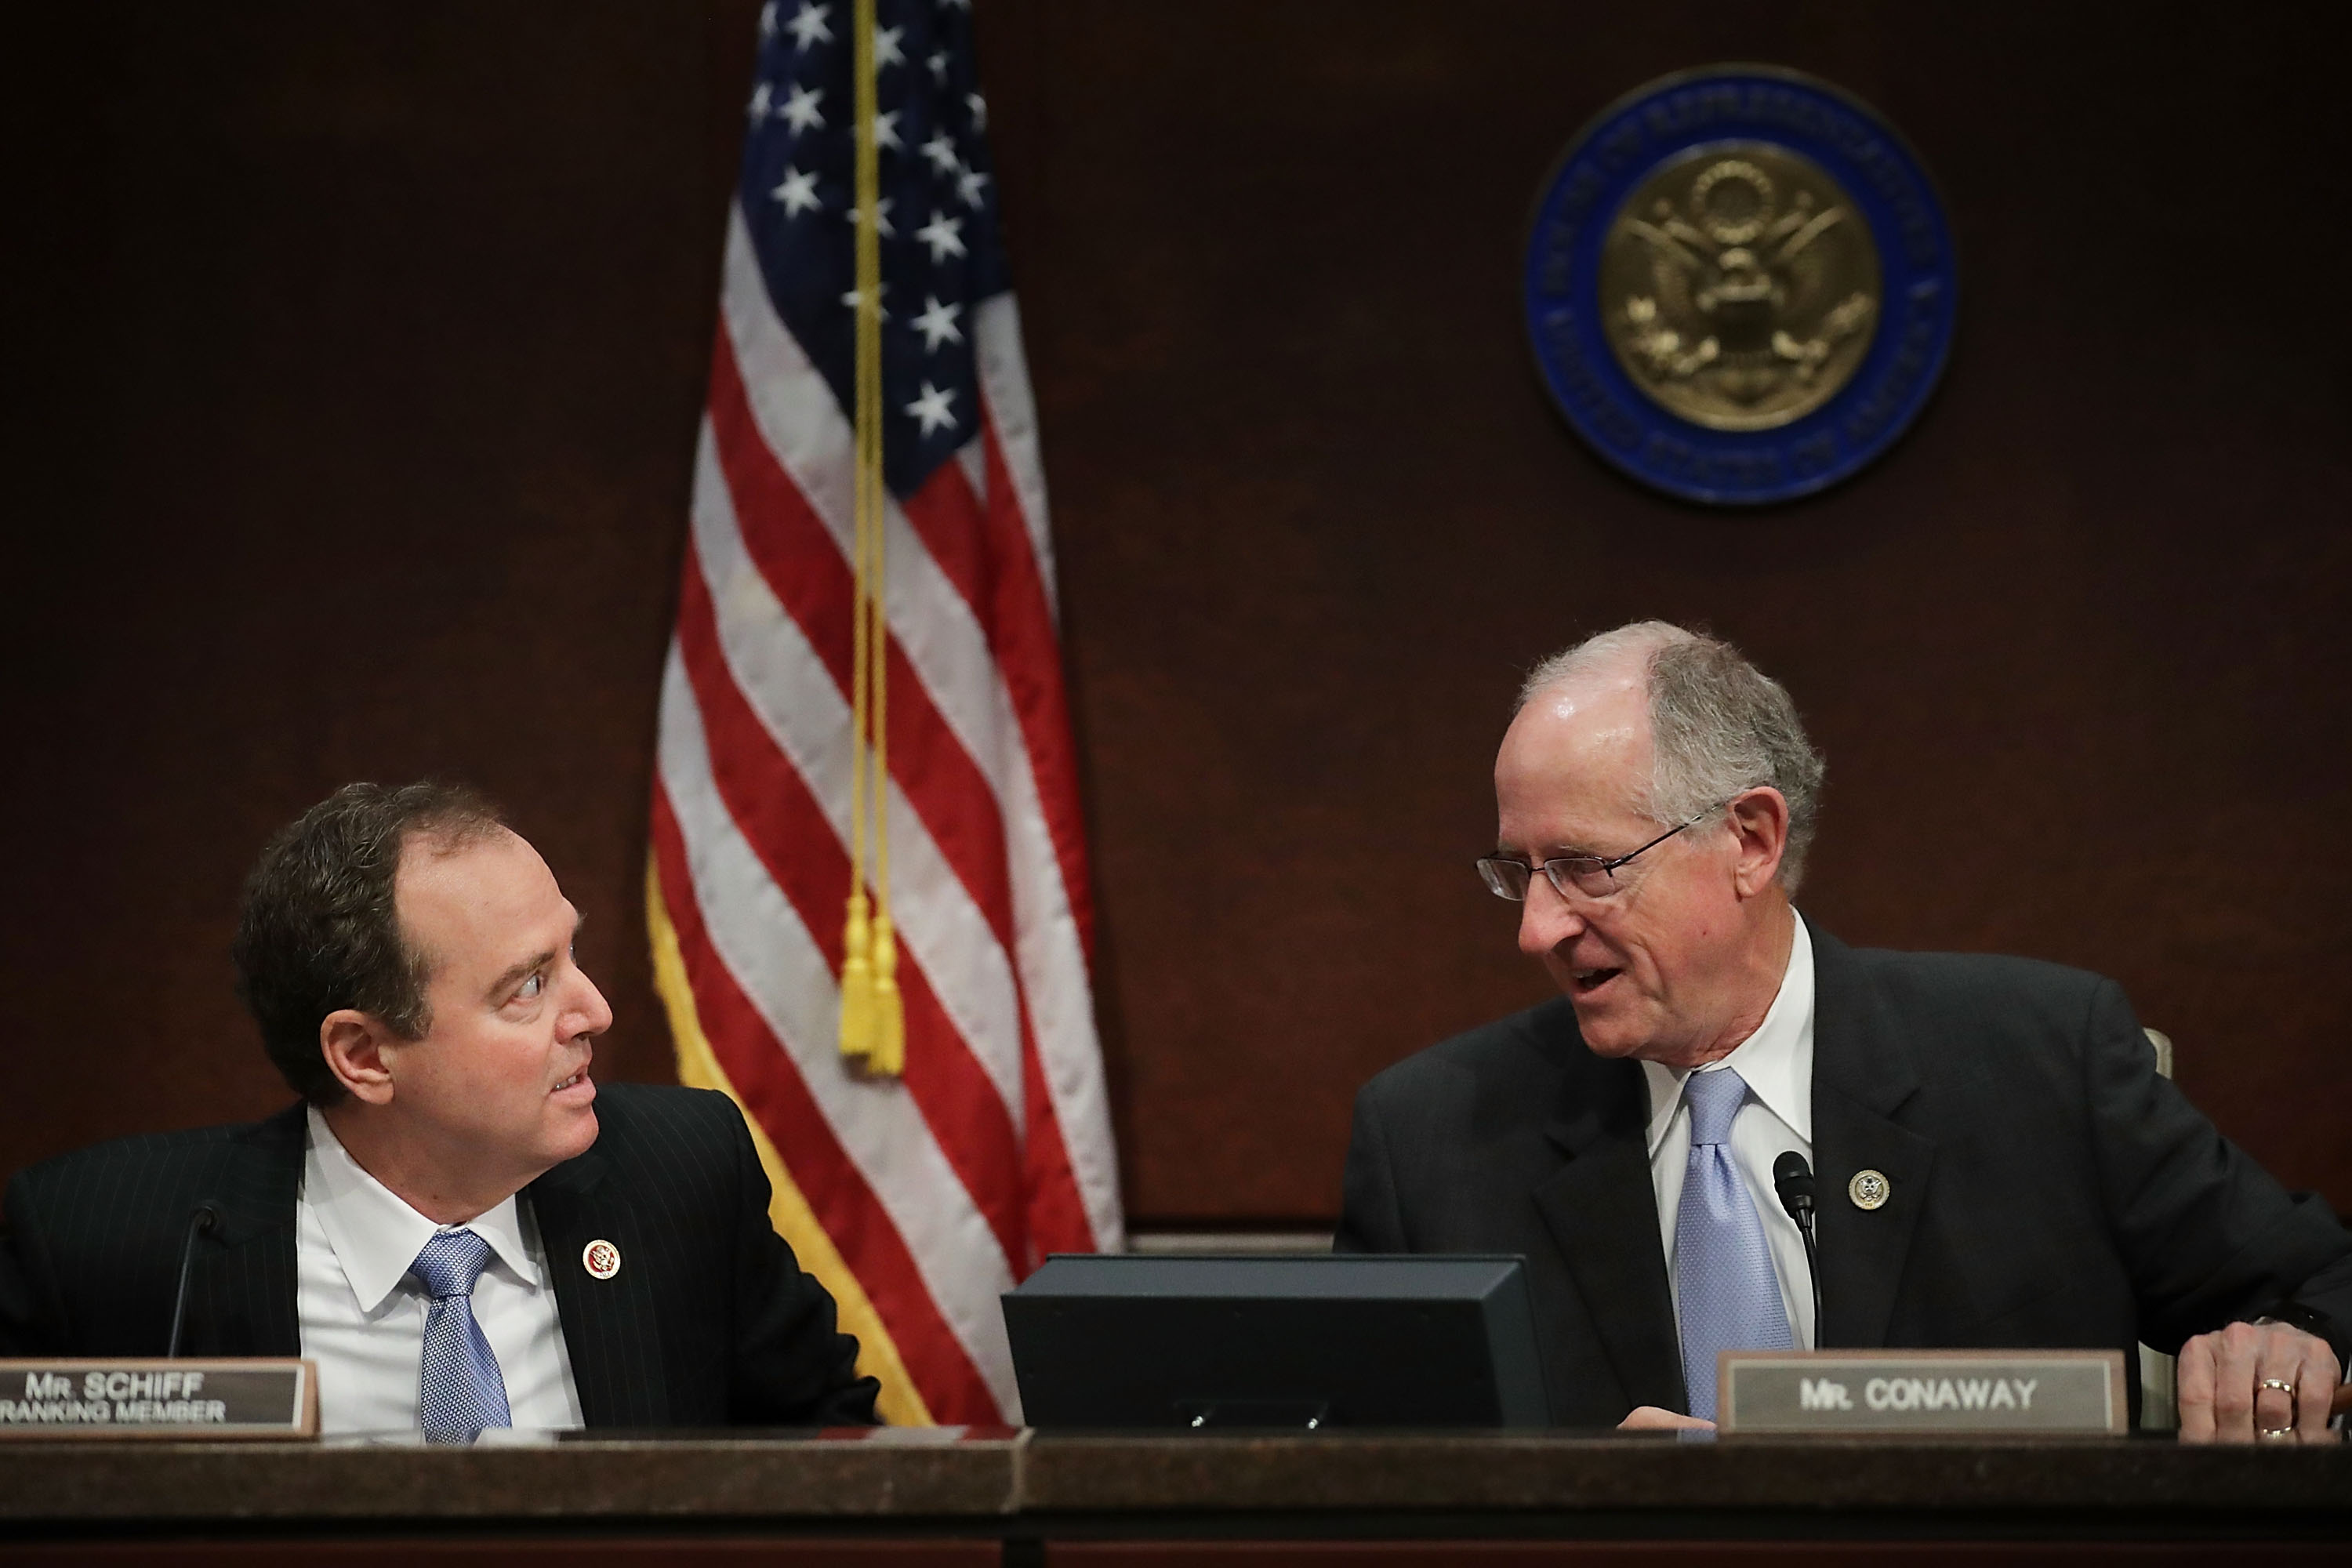 House Intelligence Committee ranking member Rep. Adam Schiff (D-CA) and Rep. Mike Conaway, who is heading the committee's investigatoin into the Russian intereference in the 2016 presidential elections, talk to each other during an open hearing in the U.S. Capitol Visitors Center June 21, 2017 in Washington, DC. (Photo by Chip Somodevilla/Getty Images)